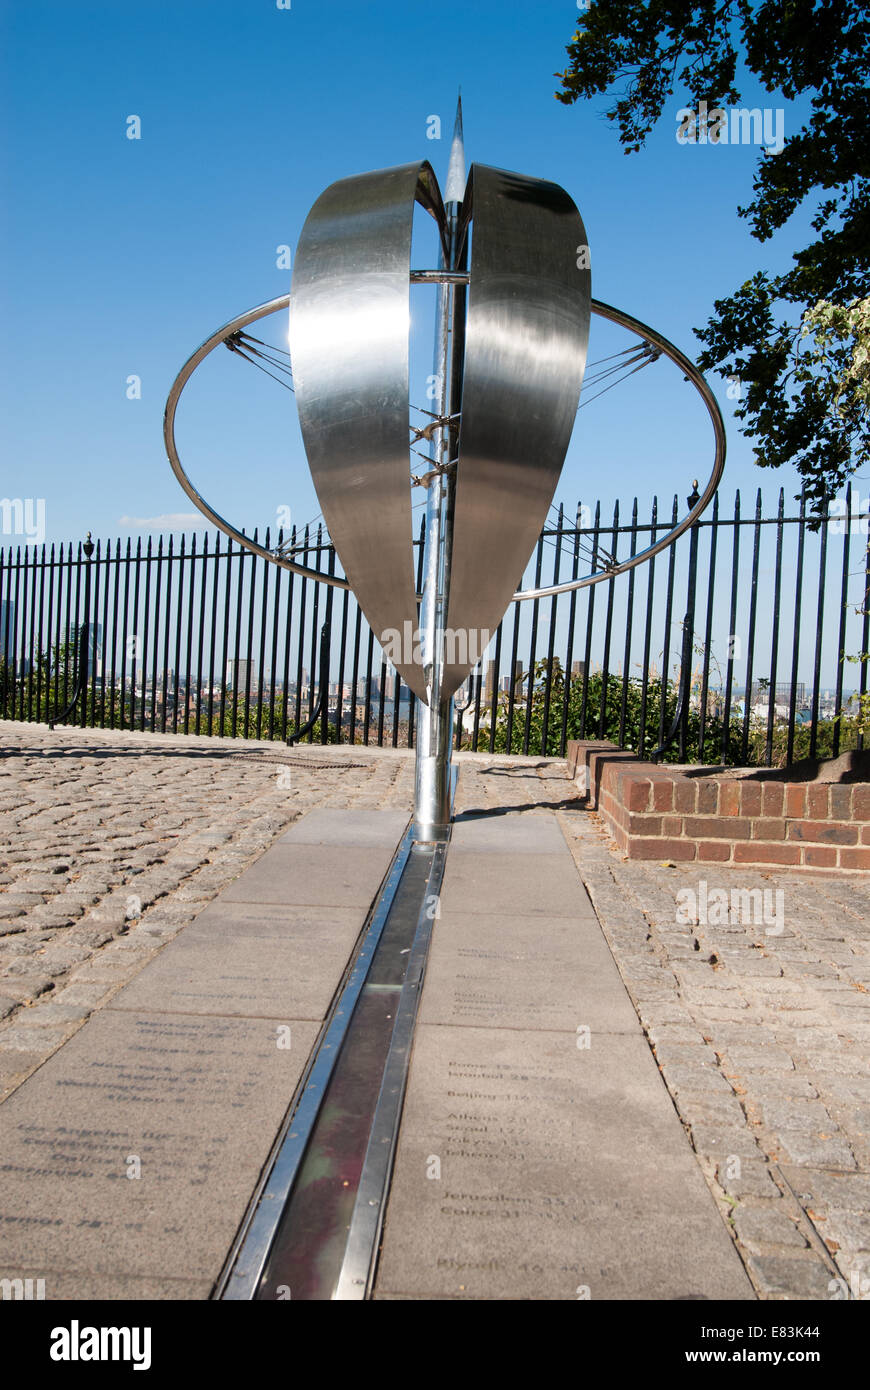 The Prime Meridian at the Royal Observatory in Greenwich